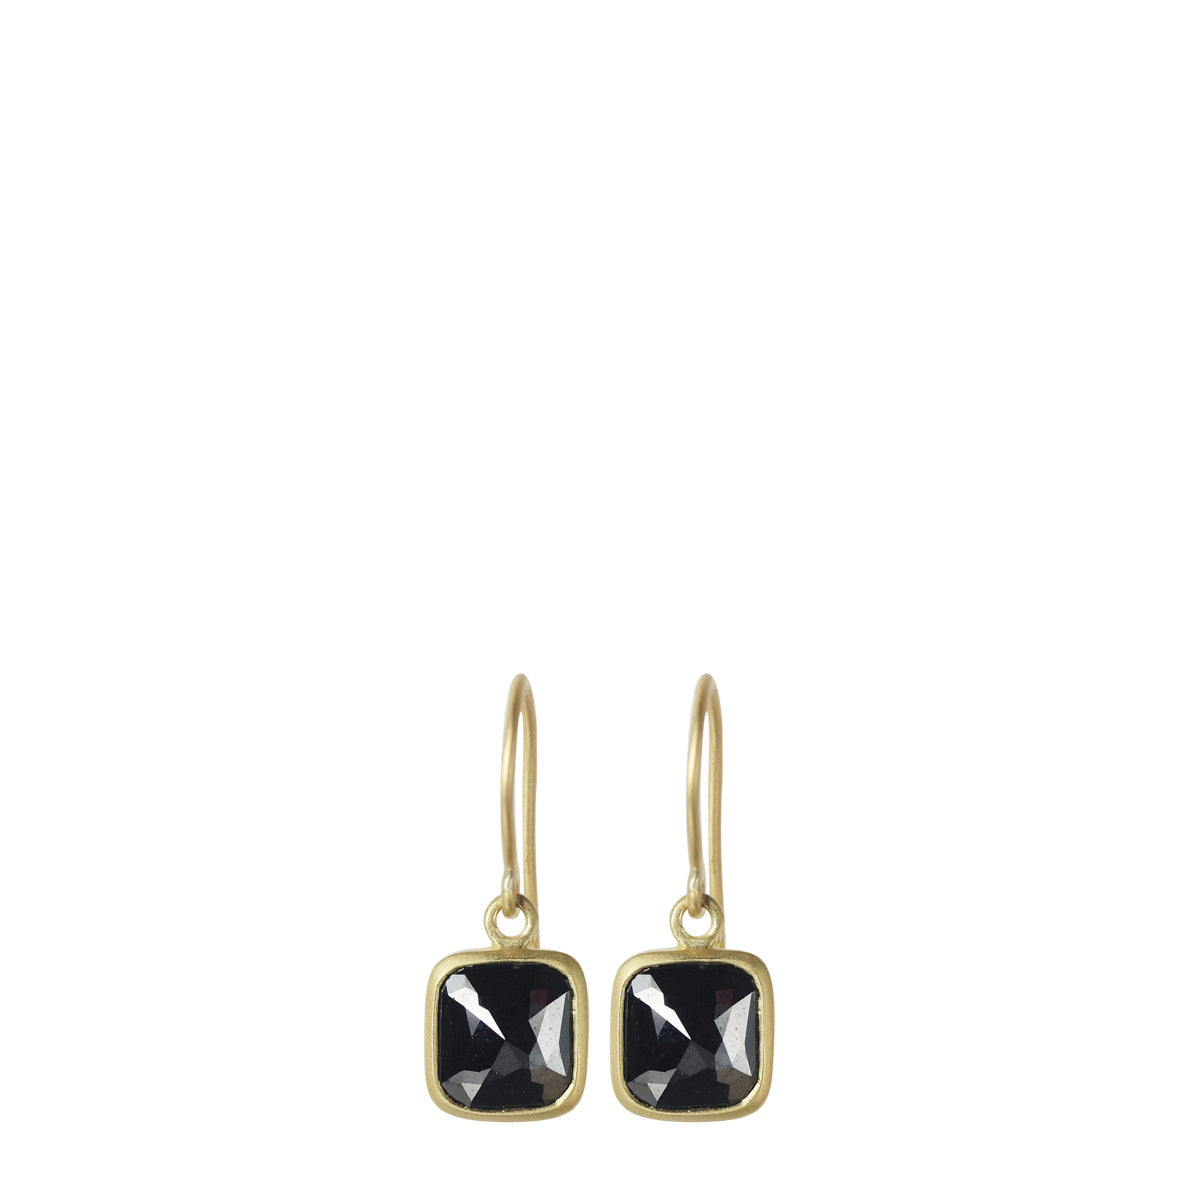 18K Gold Black Diamond Square Earrings